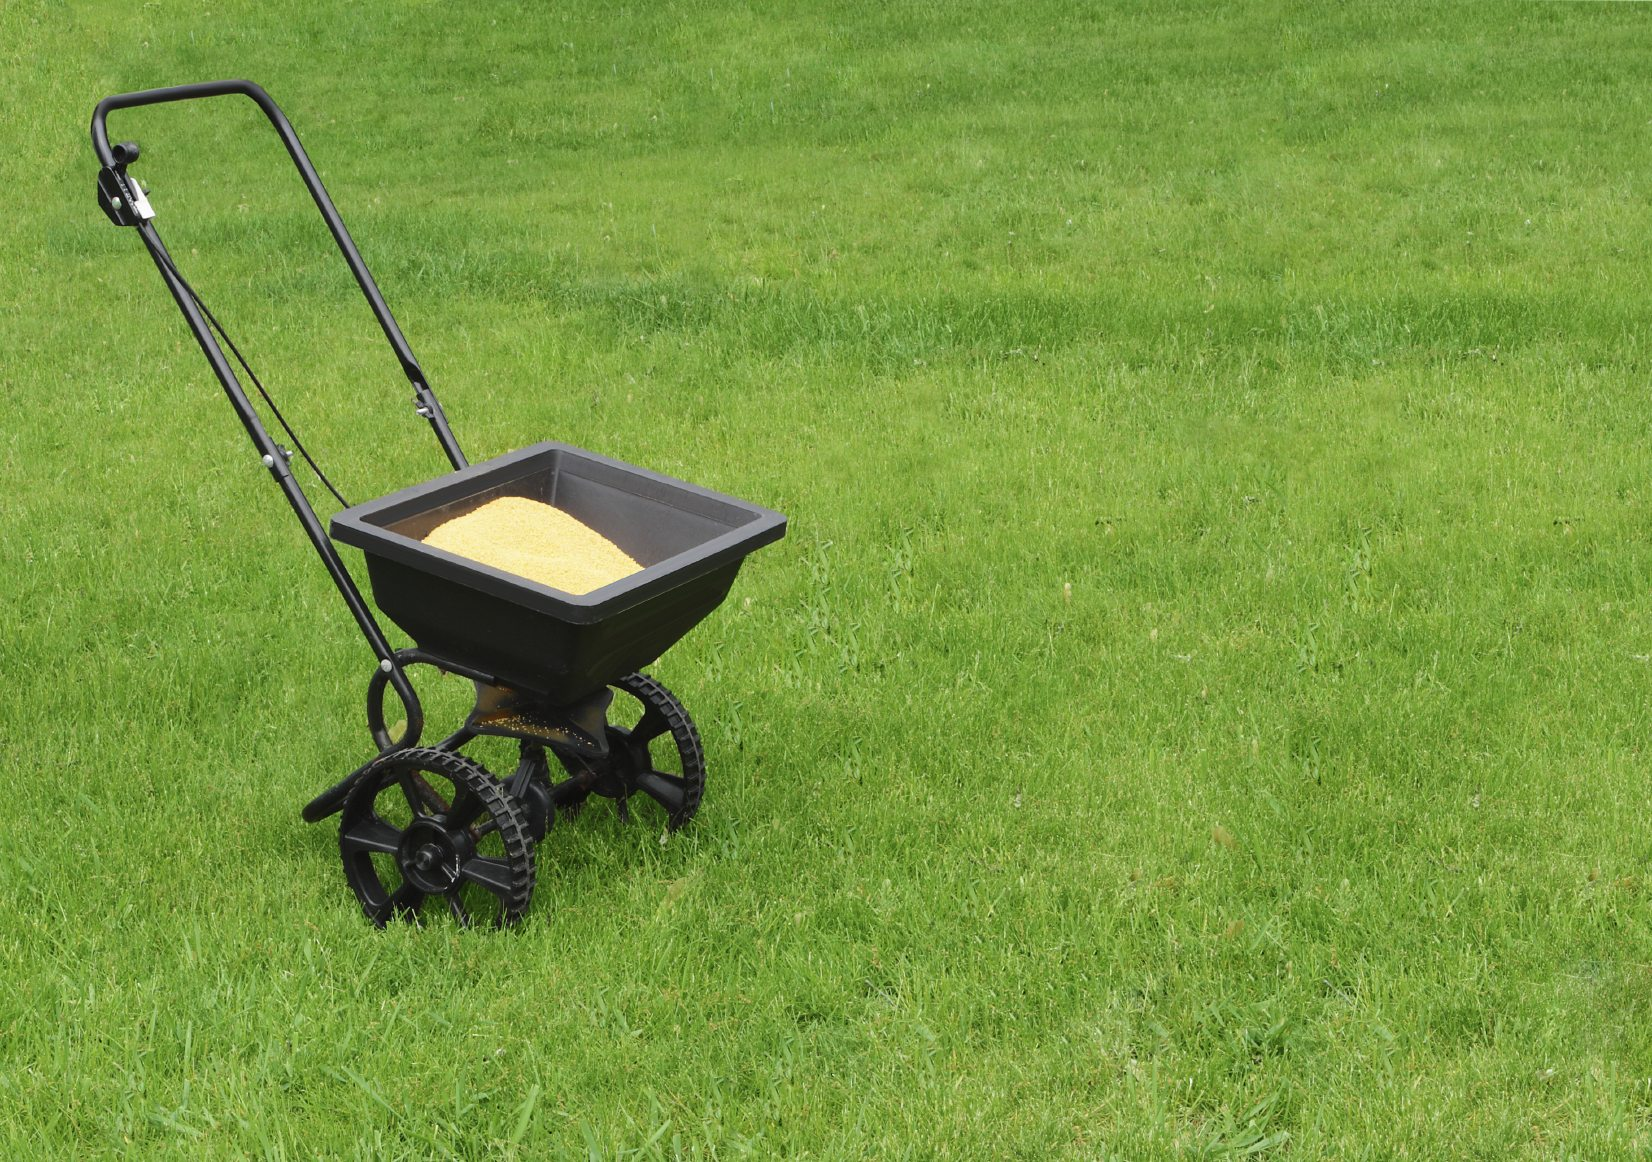 Types Of Lawn Fertilizer What Is The Best For Gr